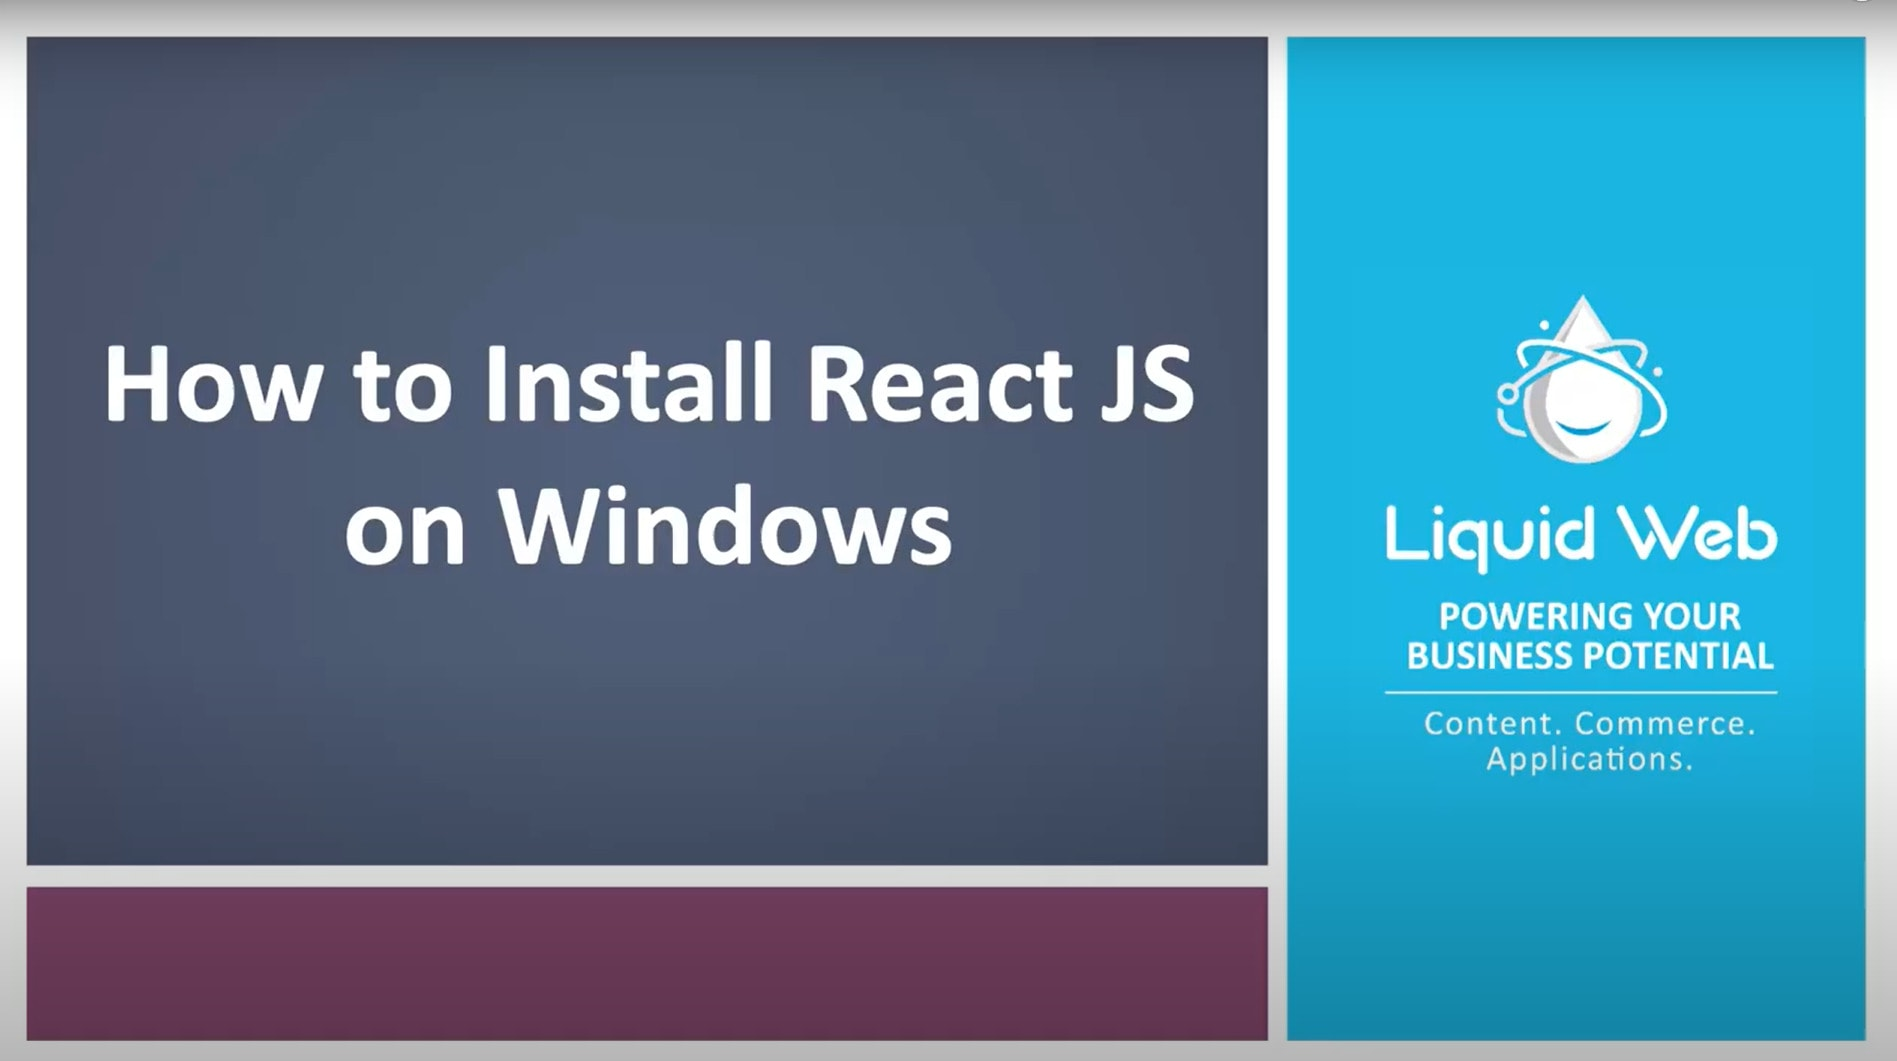 How to Install React JS On Windows